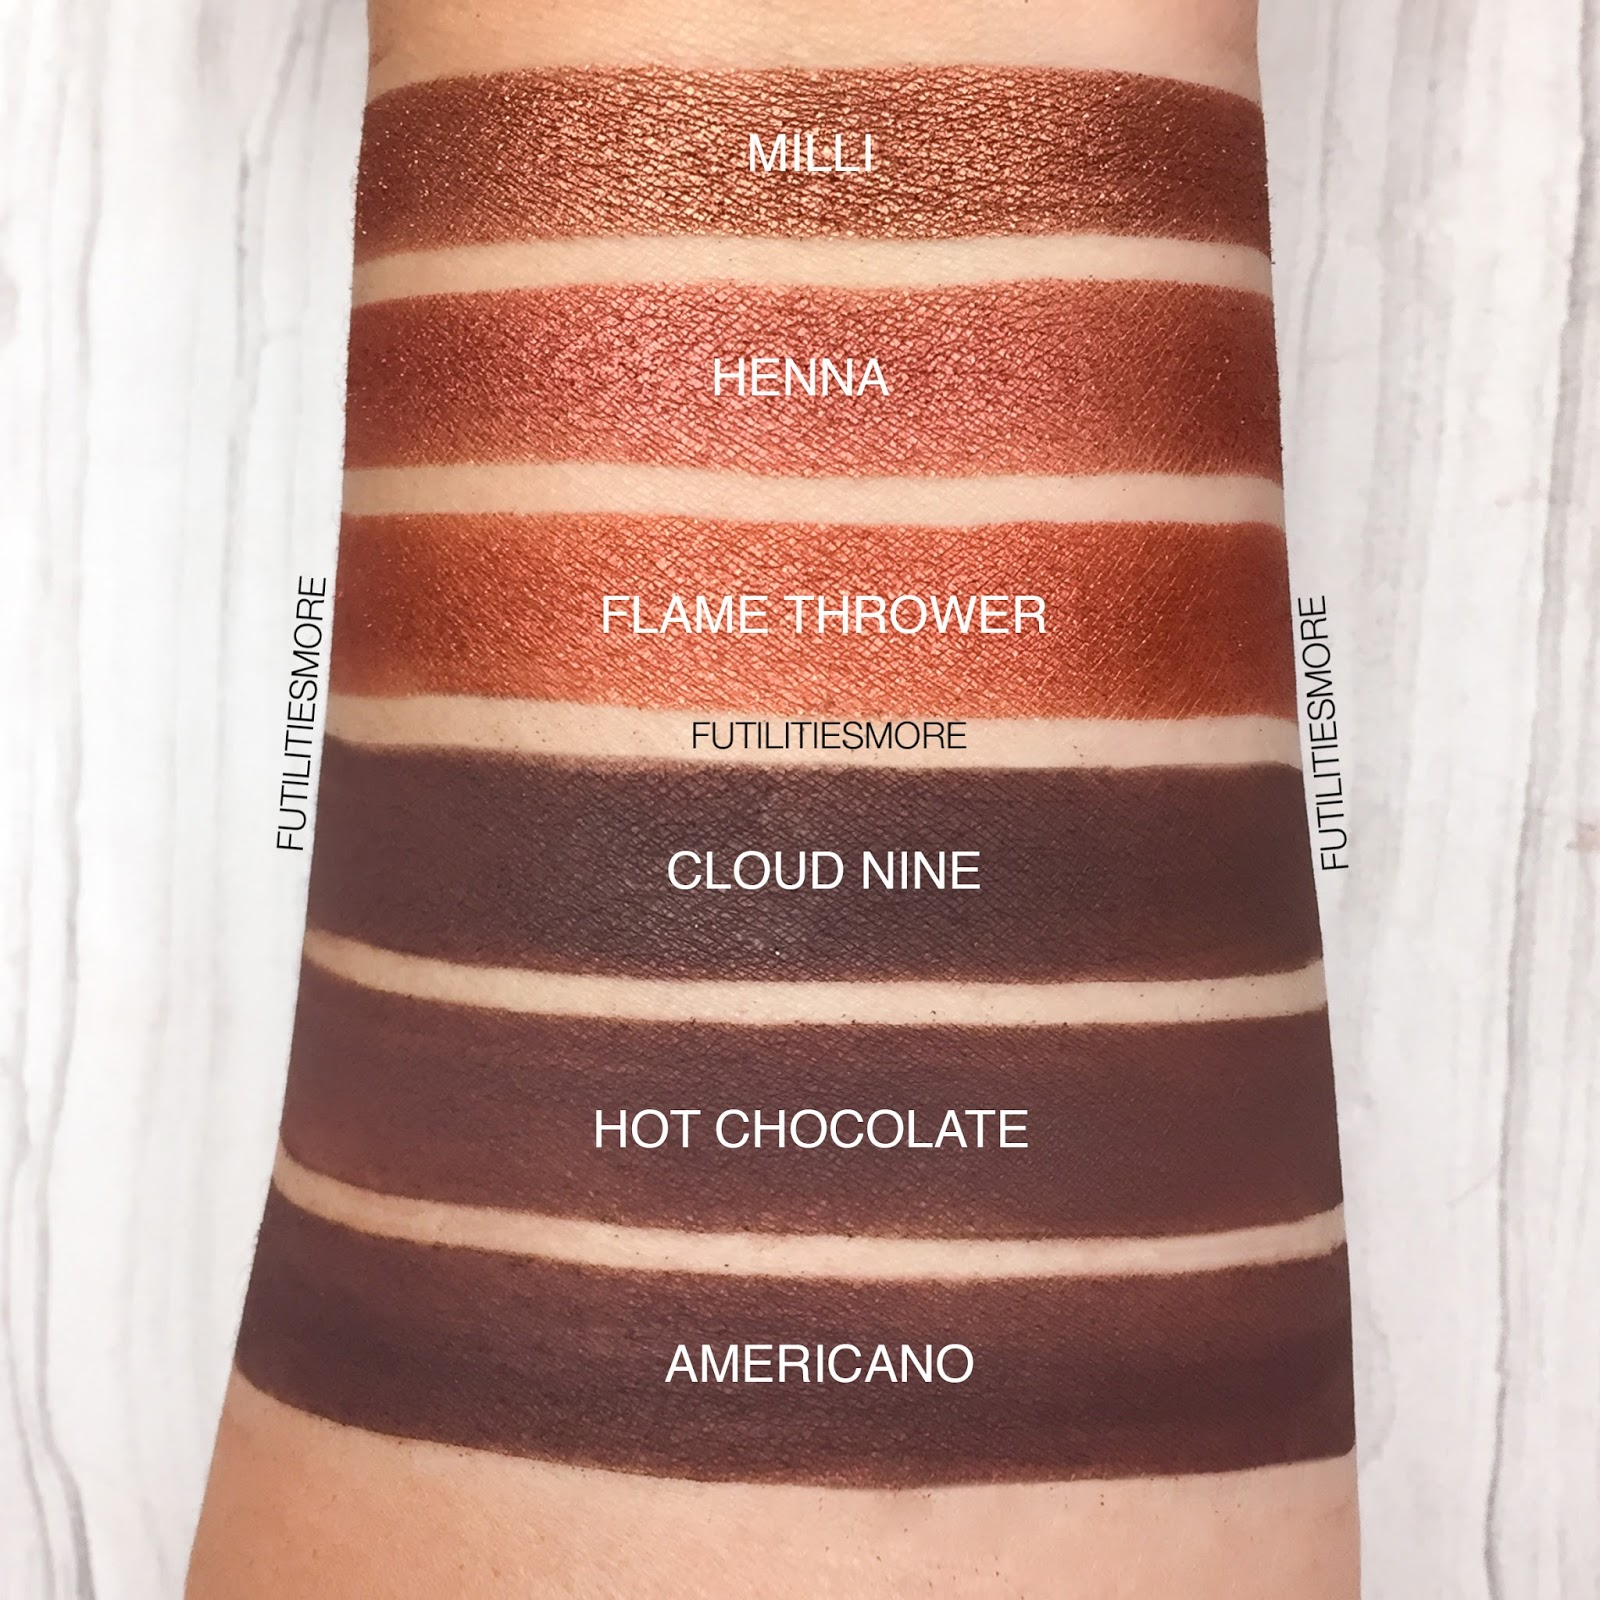 WARM BROWNS AND COPPERS Colourpop VS Anastasia Beverly Hills